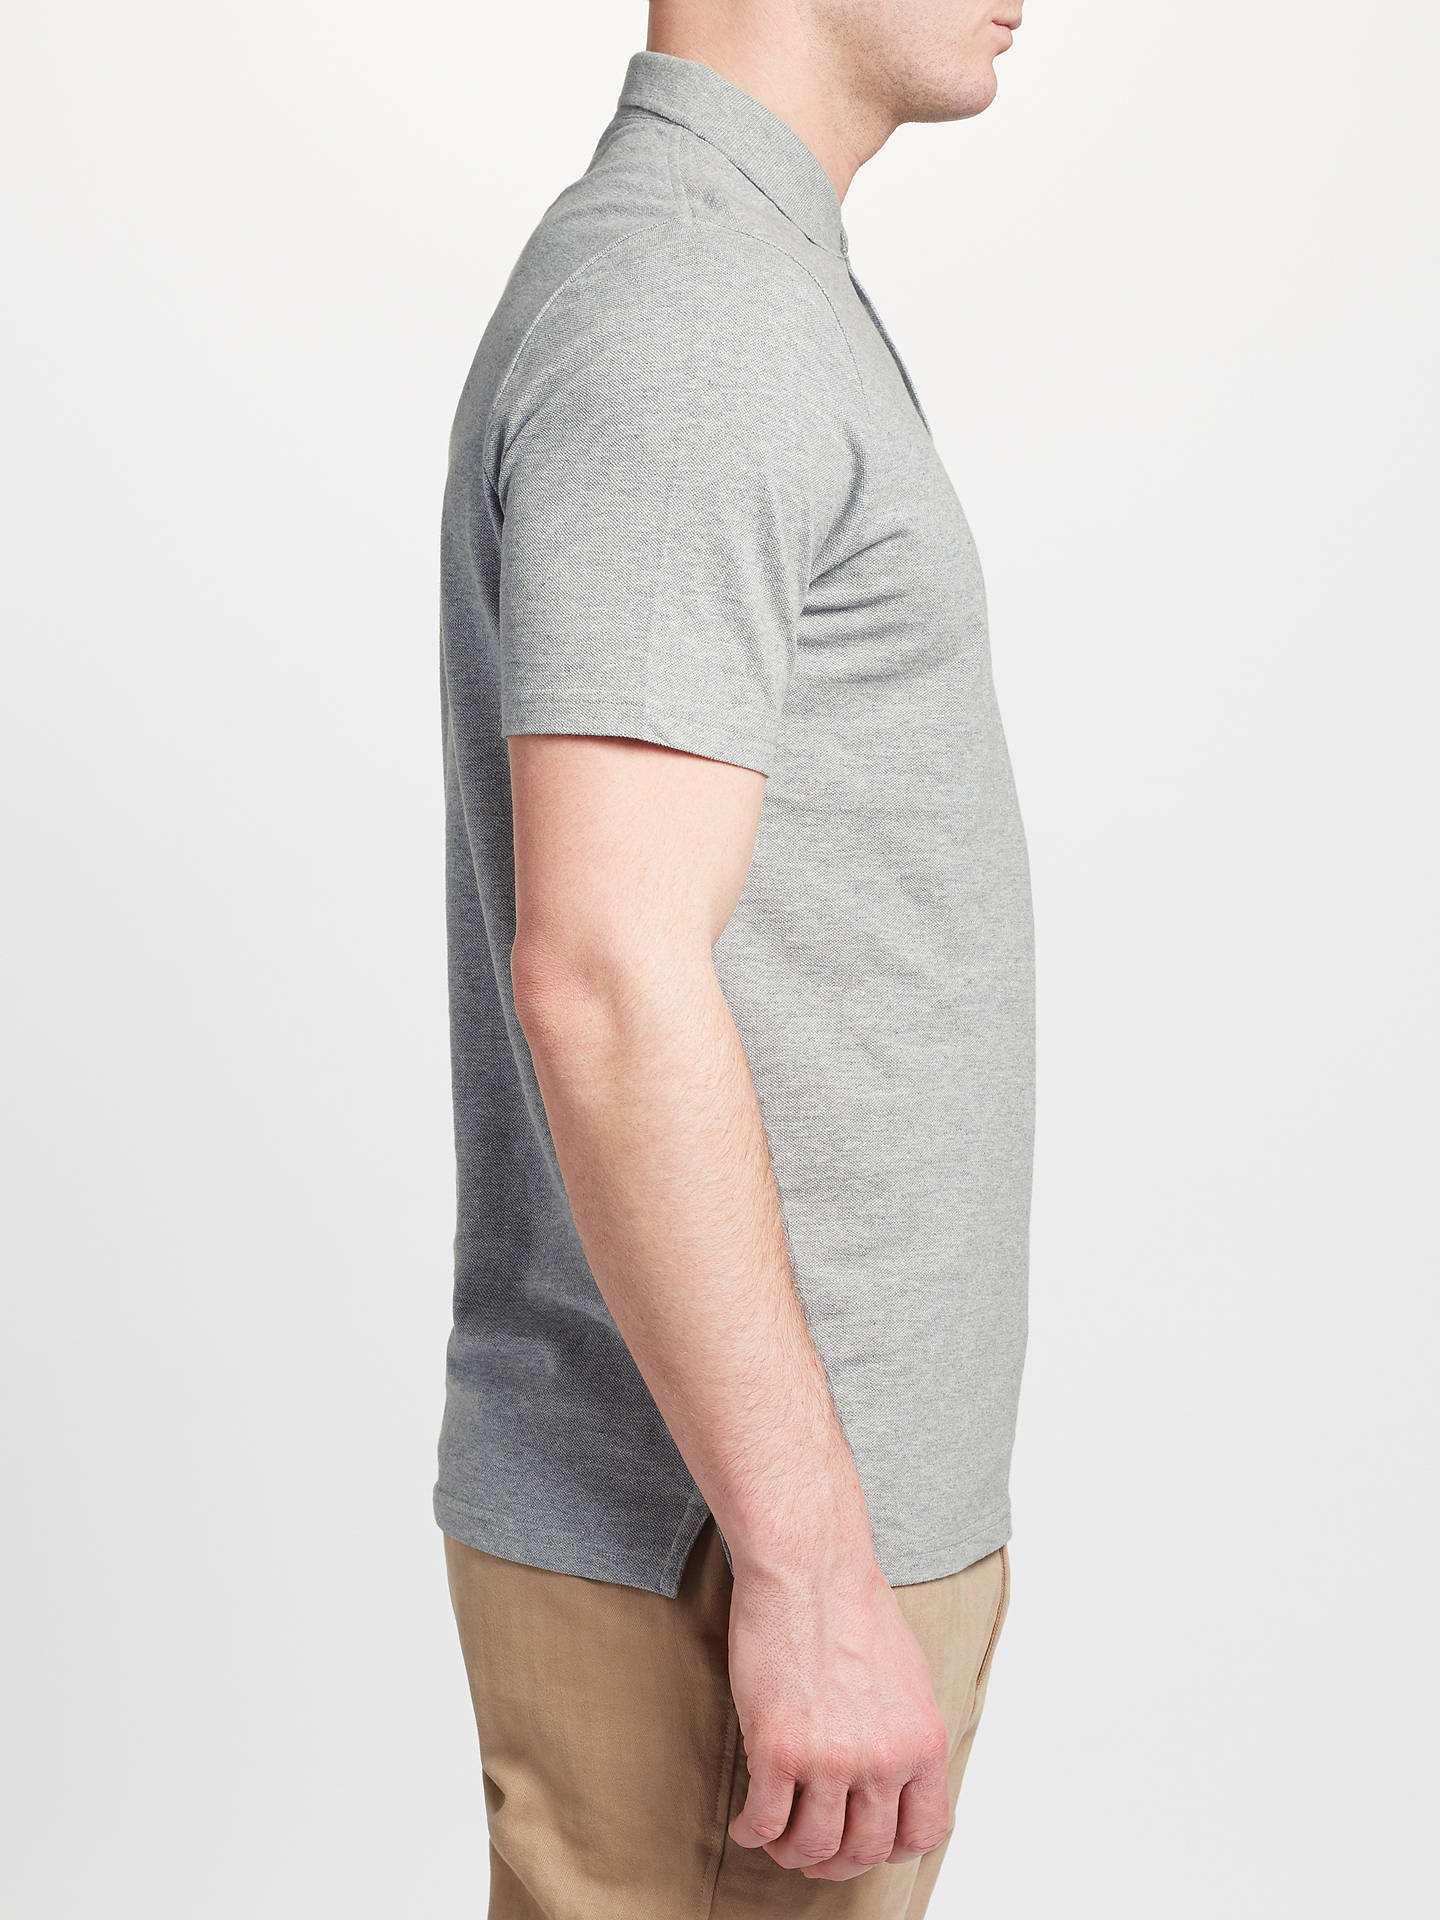 BuyJohn Lewis & Partners Cotton Pique Polo Shirt, Grey, S Online at johnlewis.com